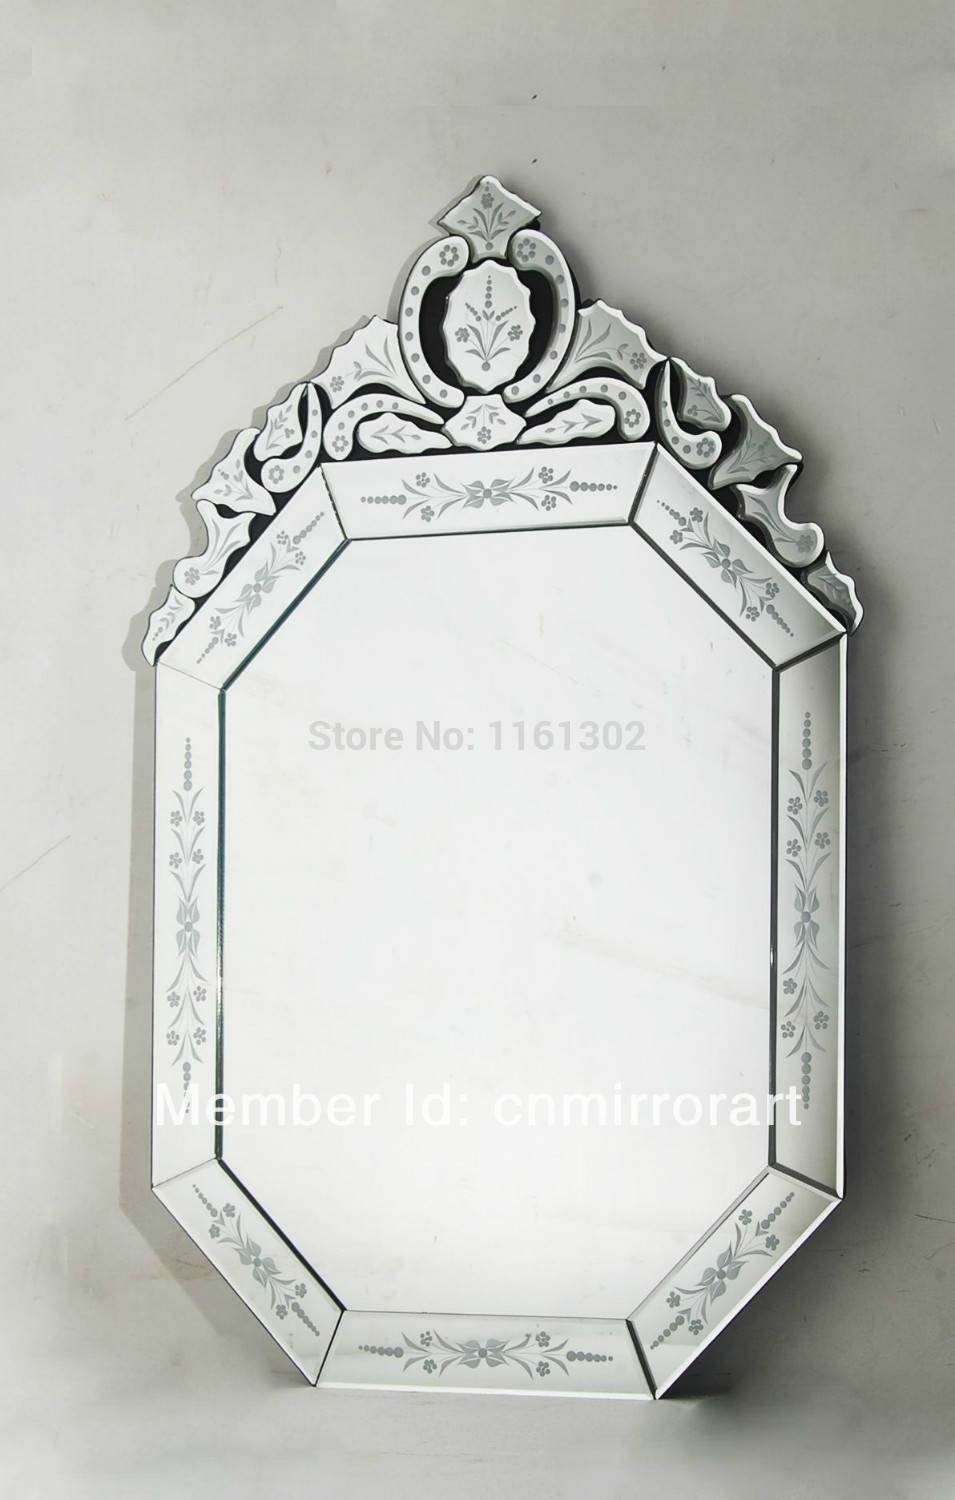 Venetian Frameless Floor Mirror | Vanity And Nightstand Decoration throughout Venetian Tray Mirrors (Image 20 of 25)